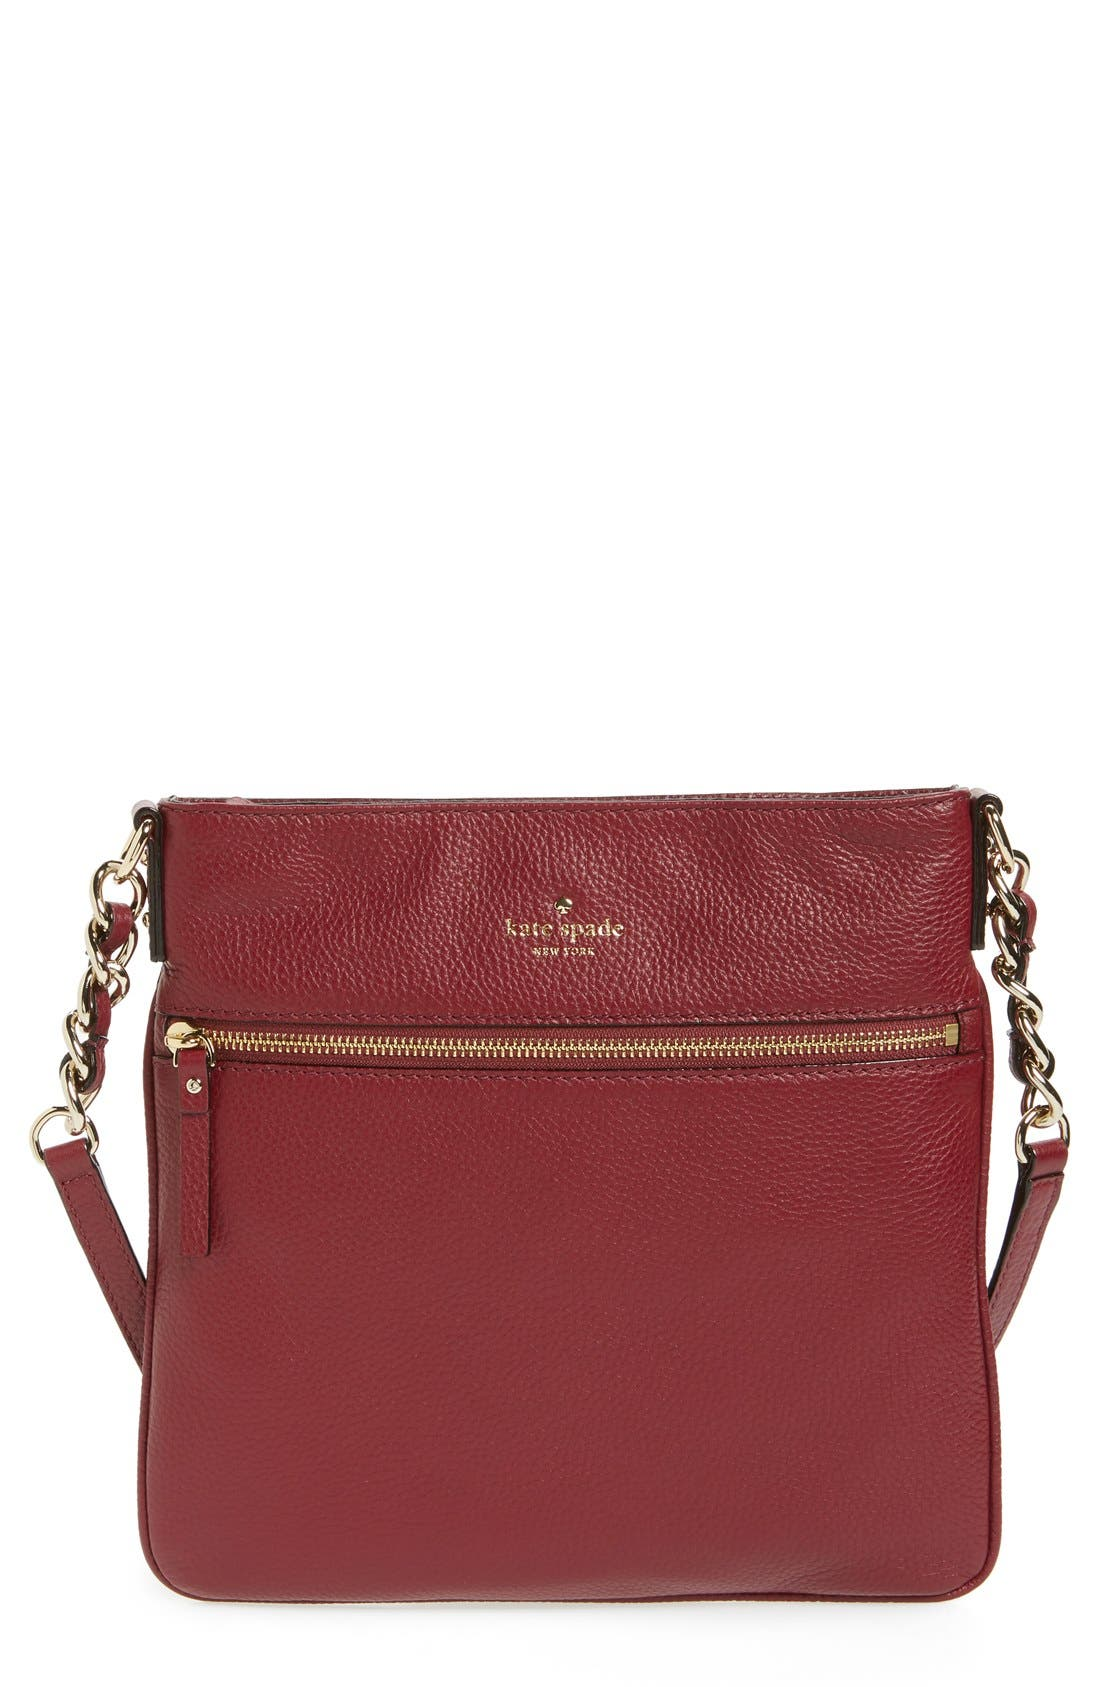 Alternate Image 1 Selected - kate spade new york 'cobble hill - ellen' leather crossbody bag